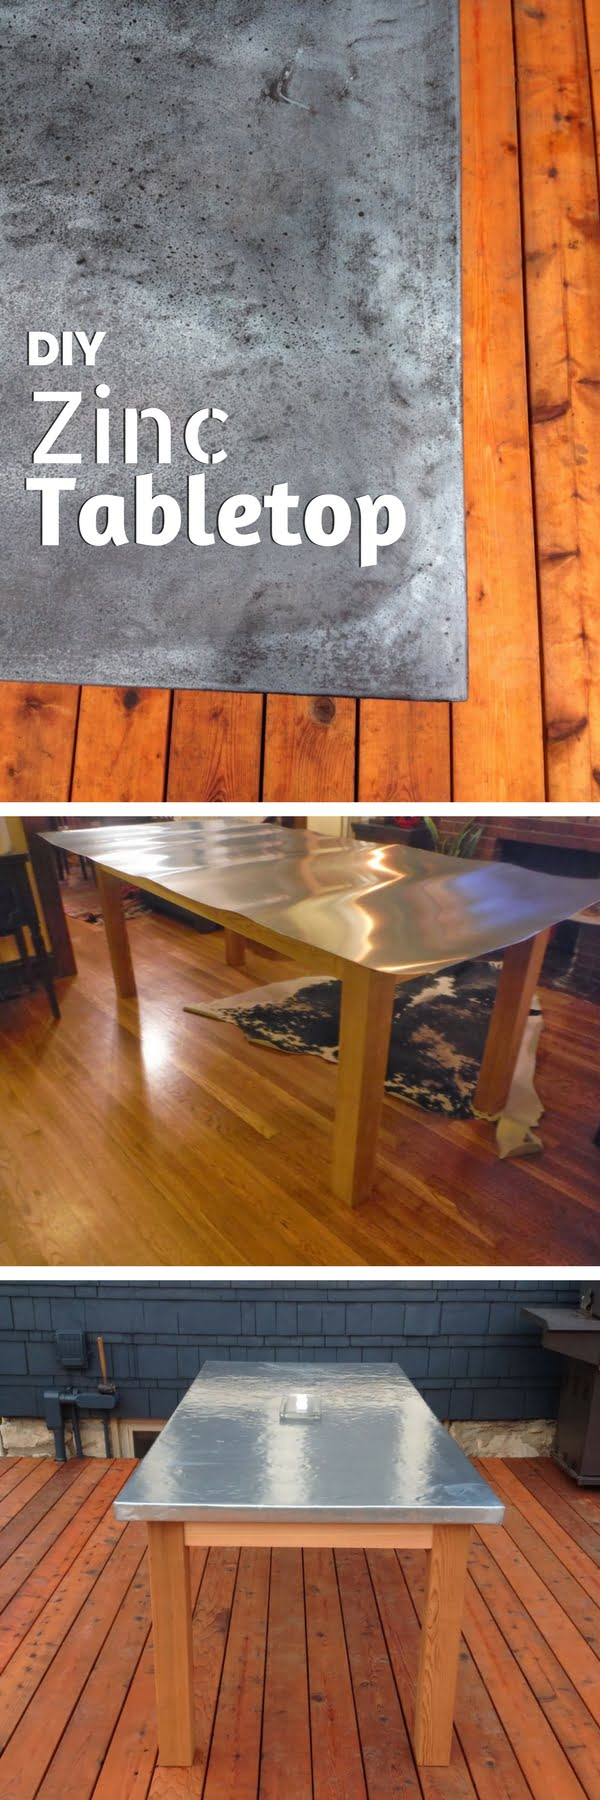 Check out how to build a DIY outdoor table with zinc tabletop